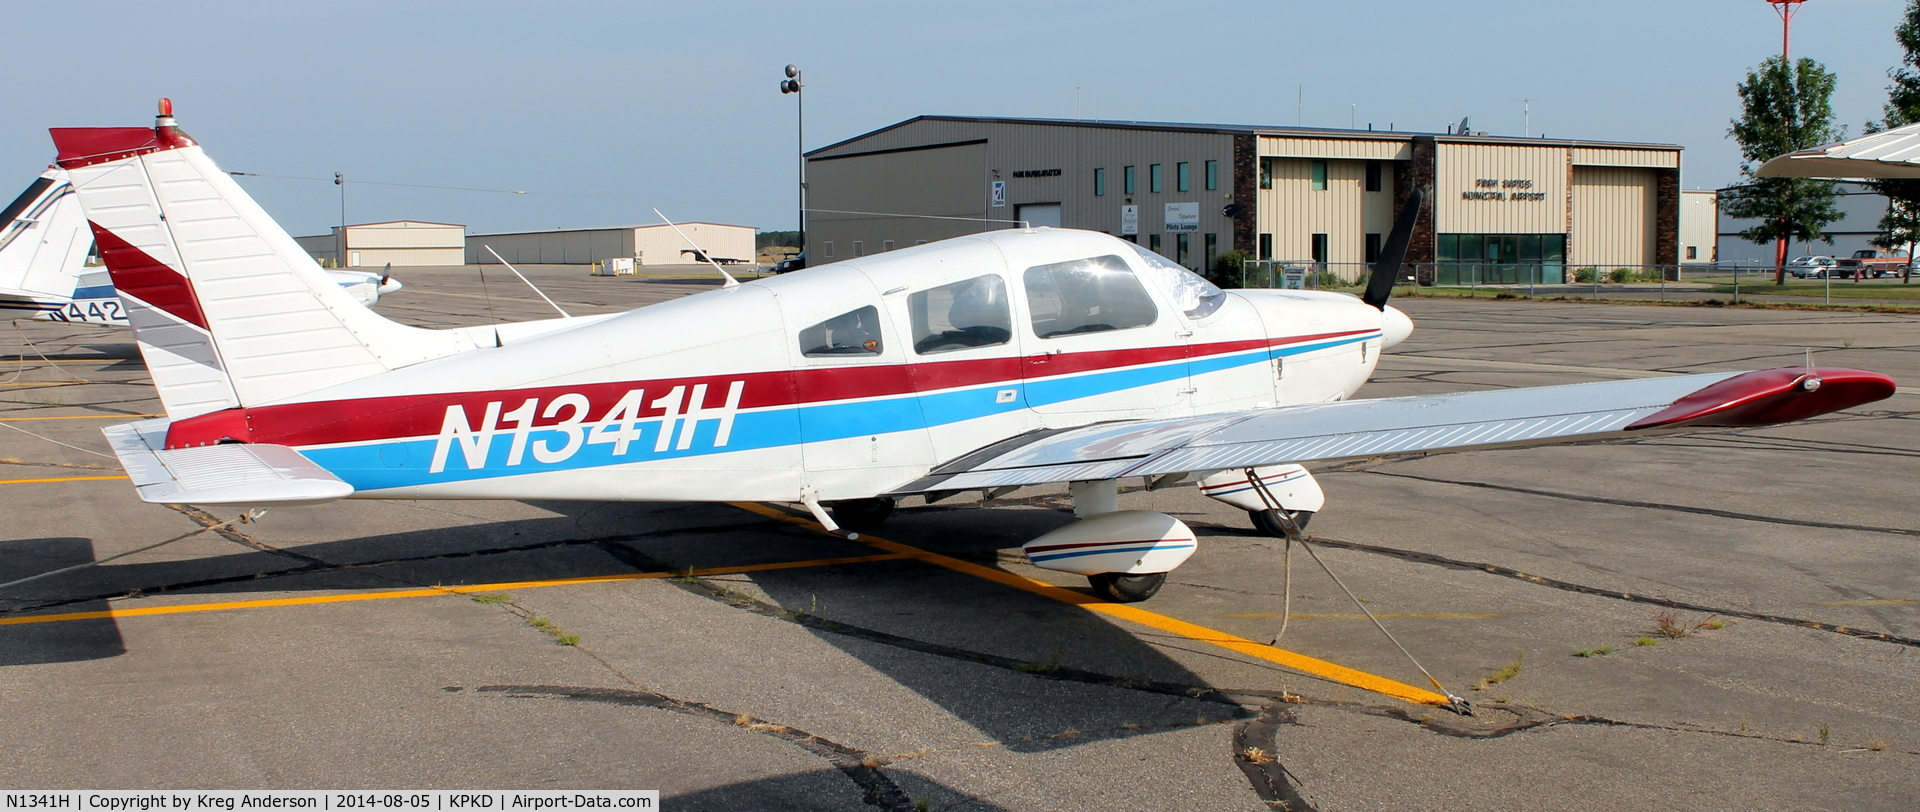 N1341H, Piper PA-28-181 Archer C/N 28-7790306, Piper PA-28-181 Archer on the ramp in Park Rapids, MN.